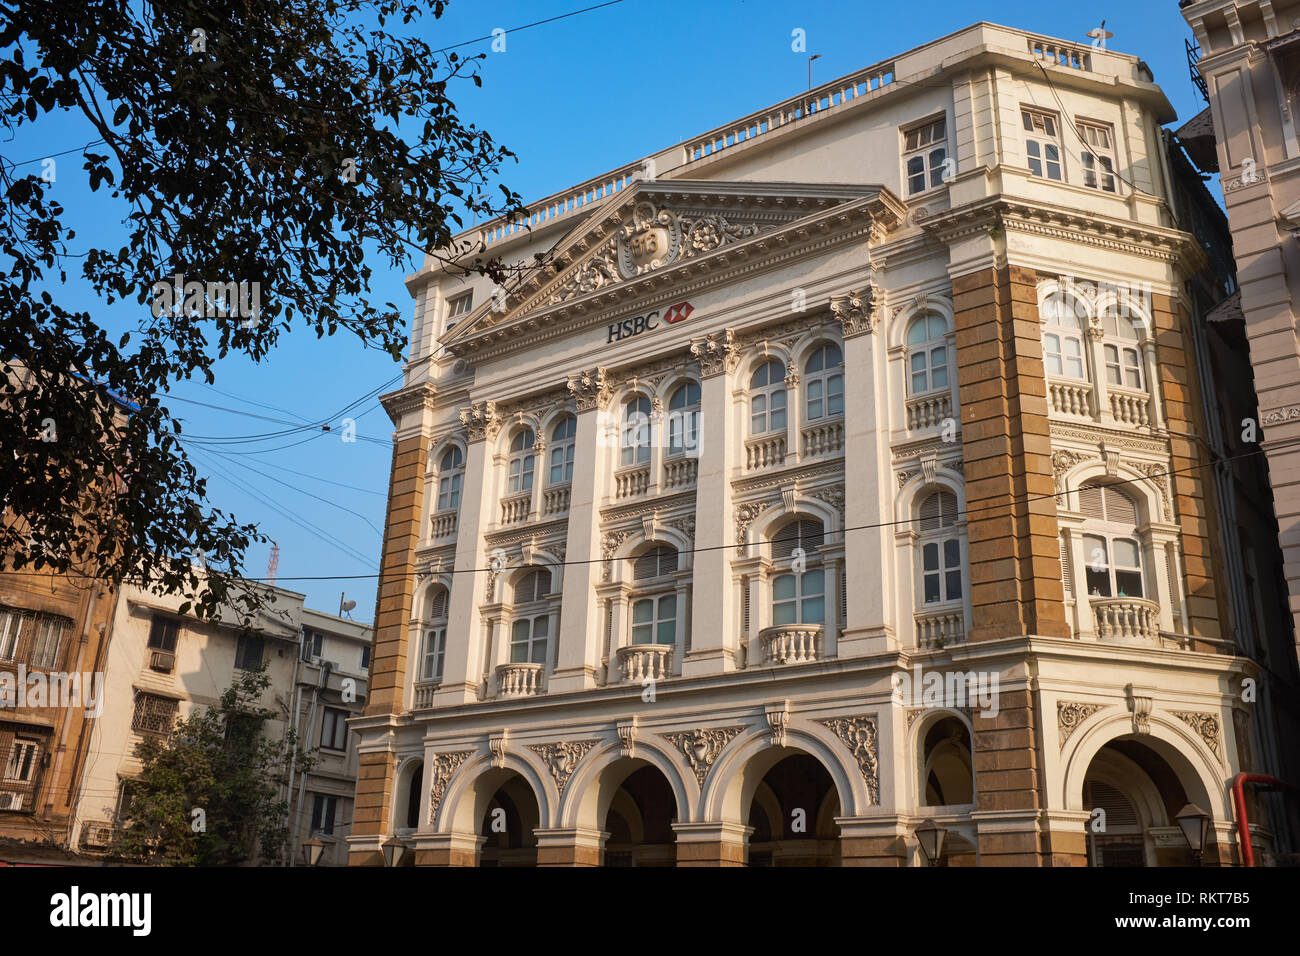 HSBC Bank building near Horniman Circle, Fort, Mumbai, India - Stock Image